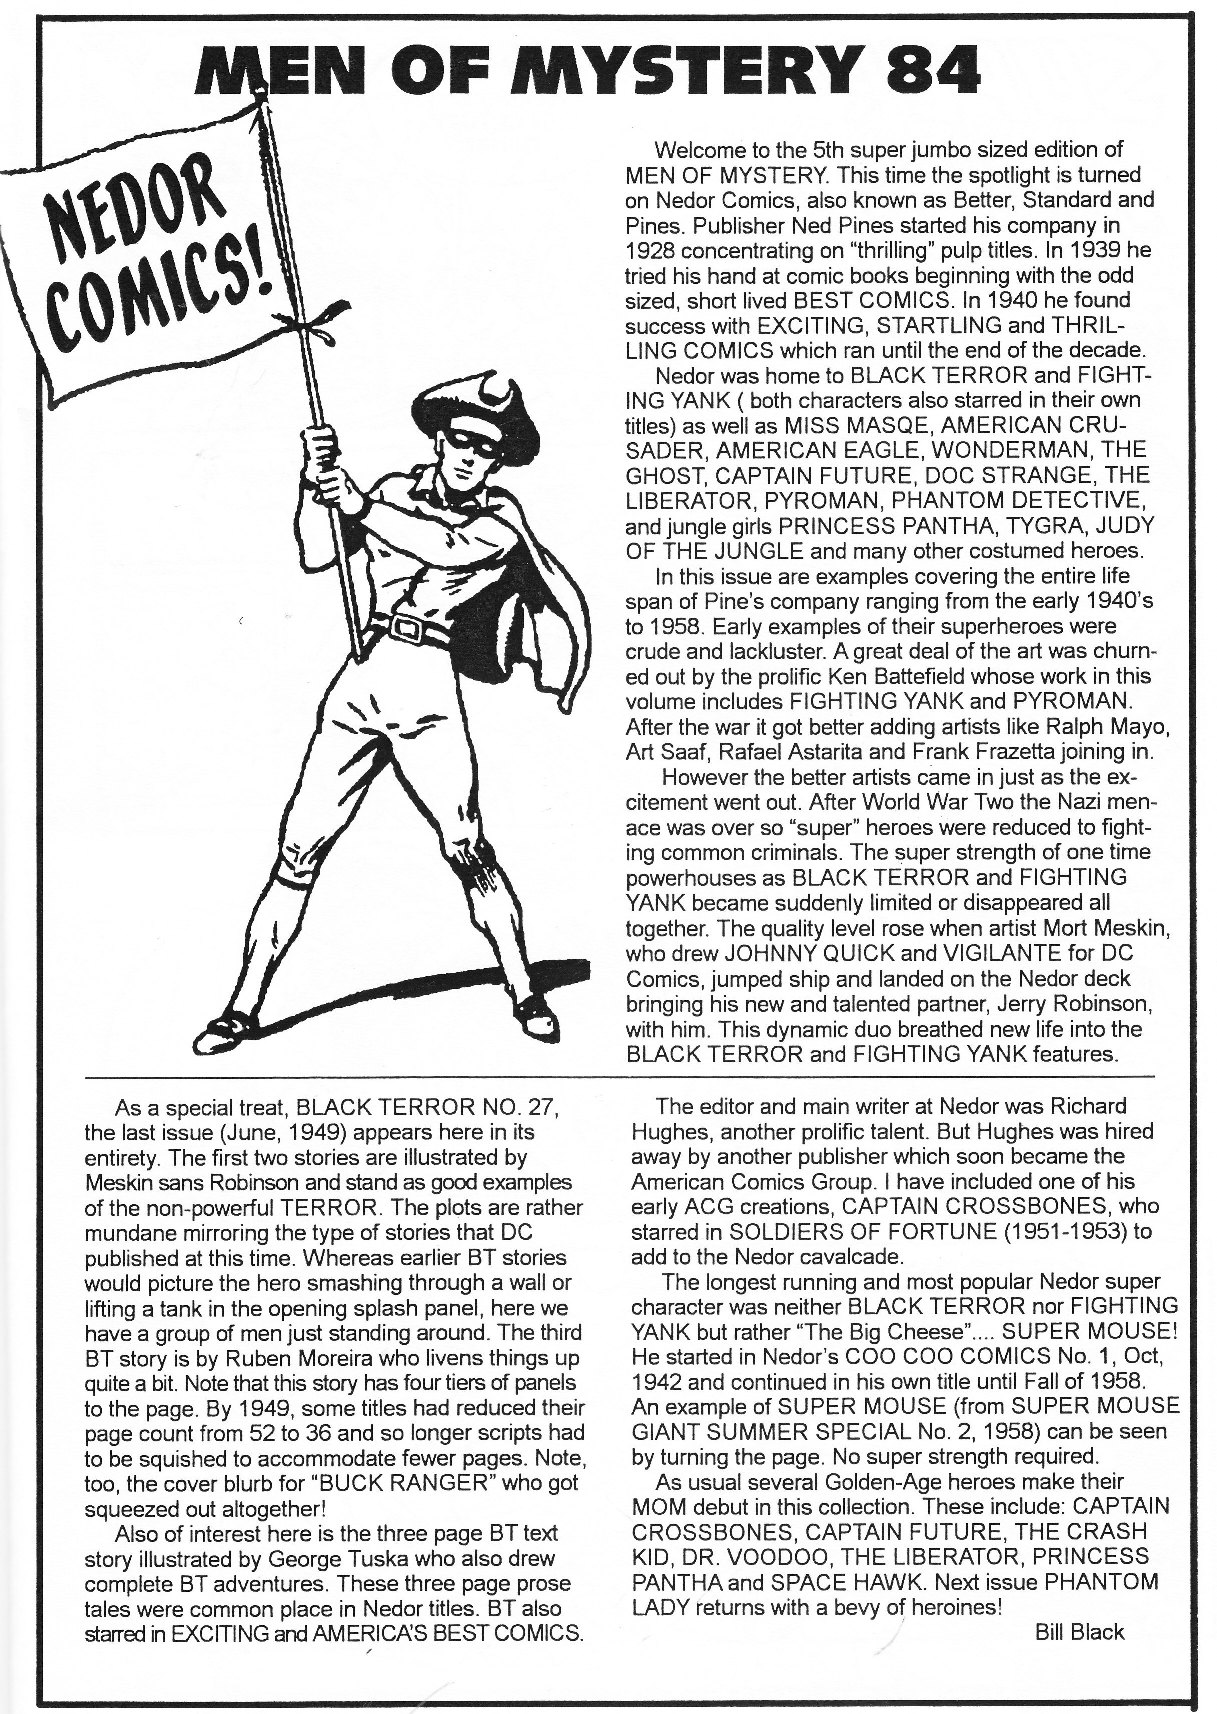 Read online Men of Mystery Comics comic -  Issue #84 - 203